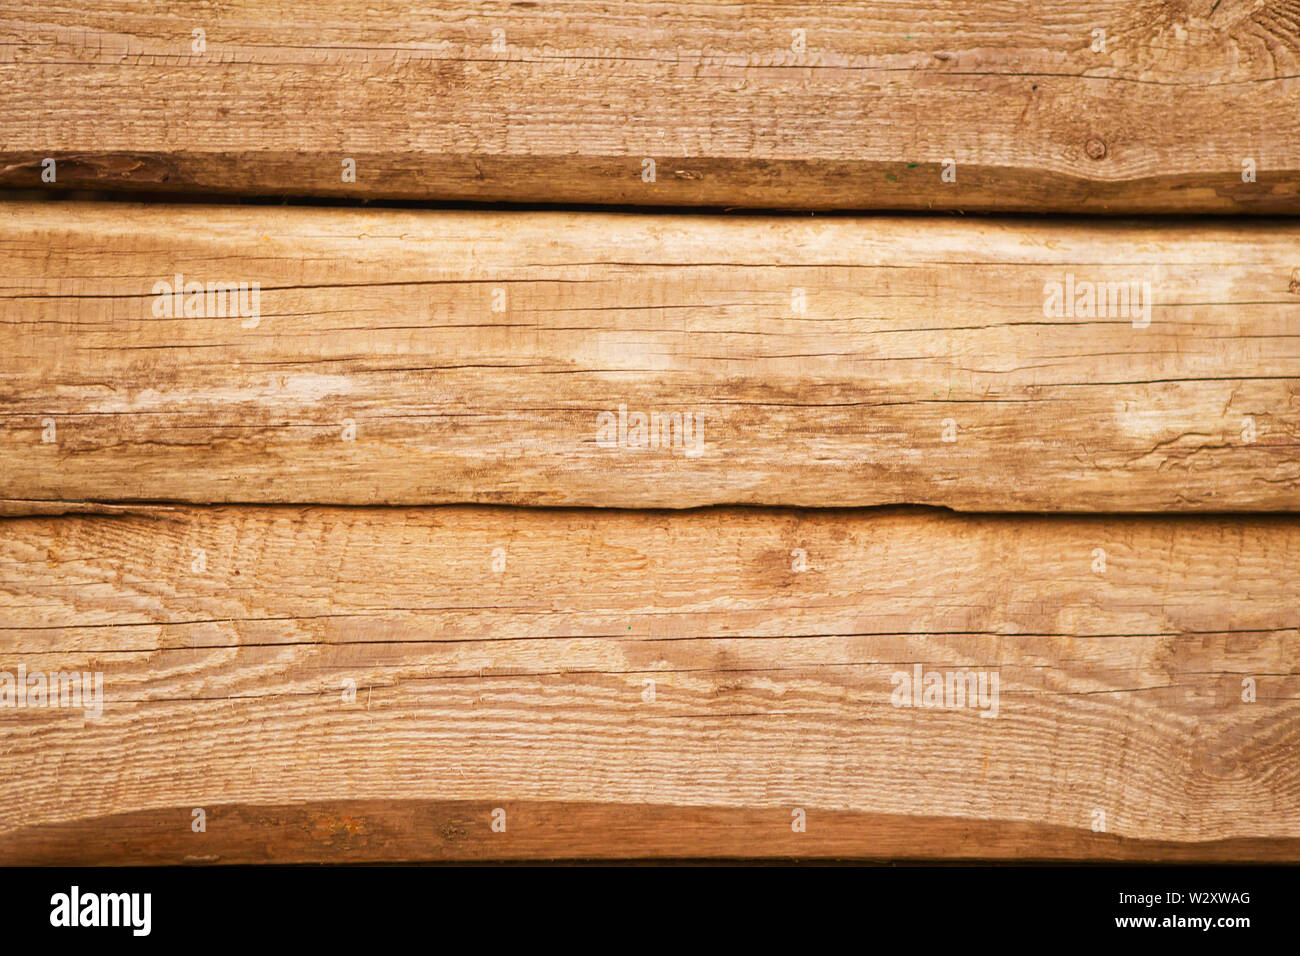 Old natural uncolored wooden wall surface. Background photo texture. - Stock Image